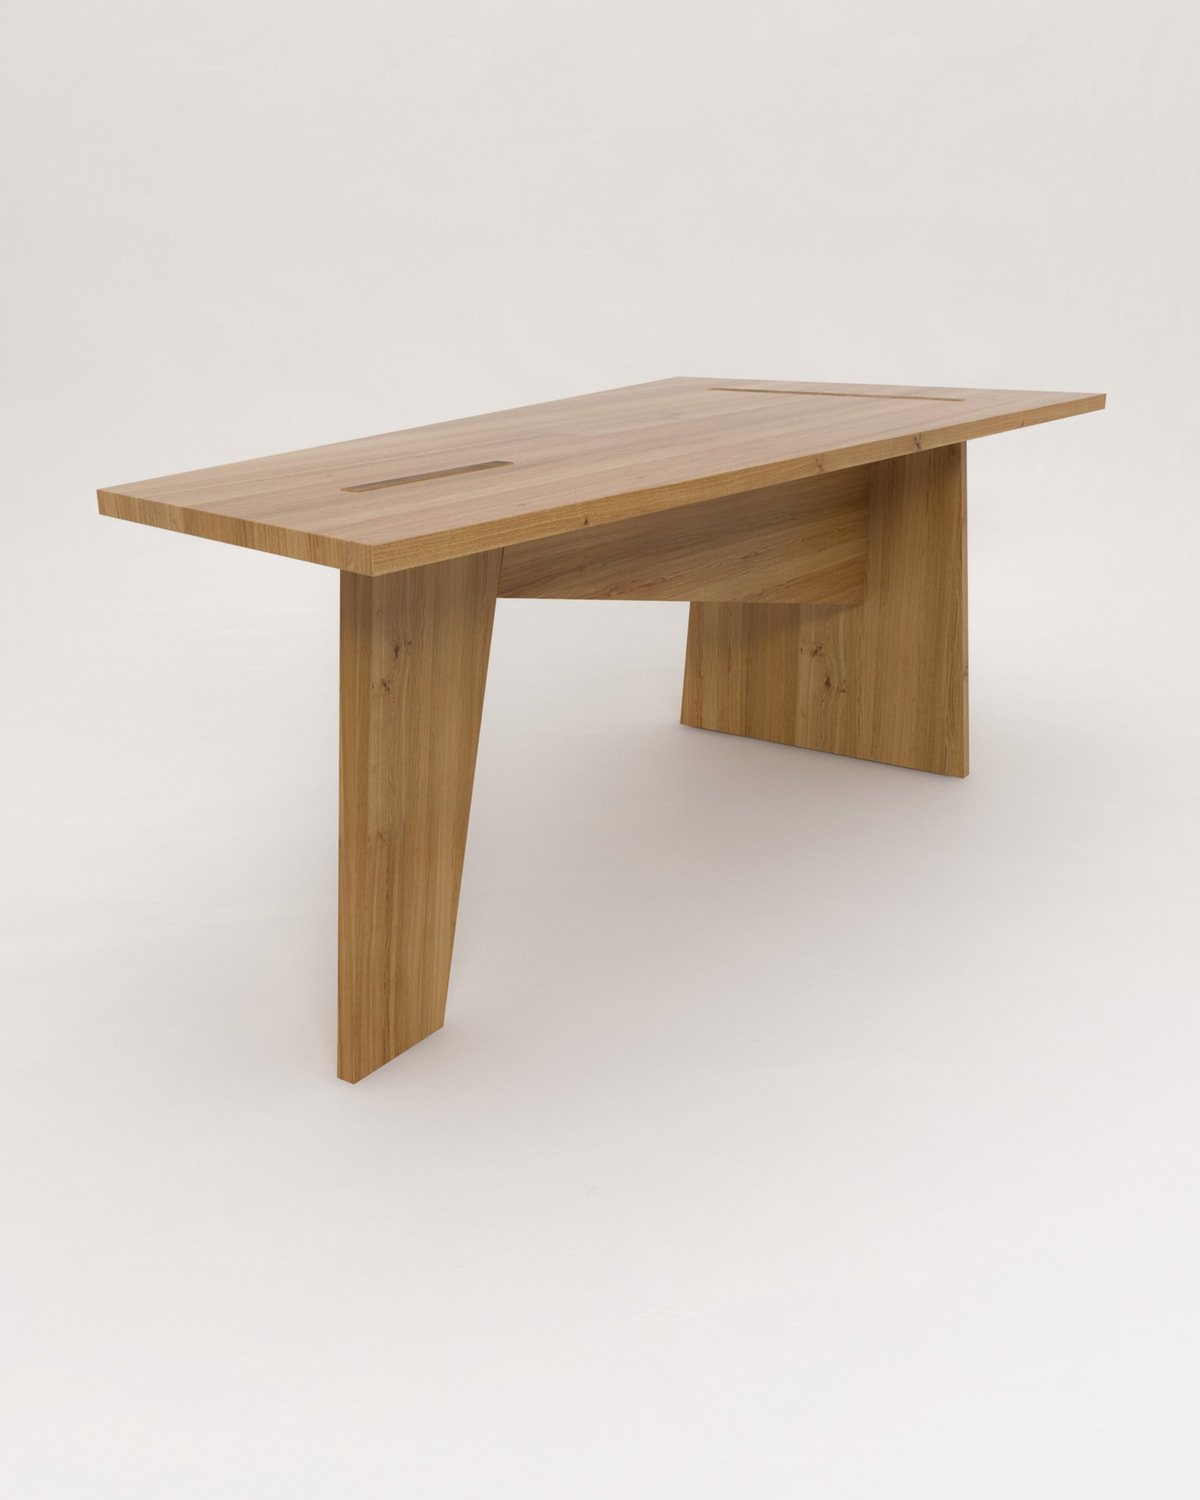 crooked_dining_table_01_1